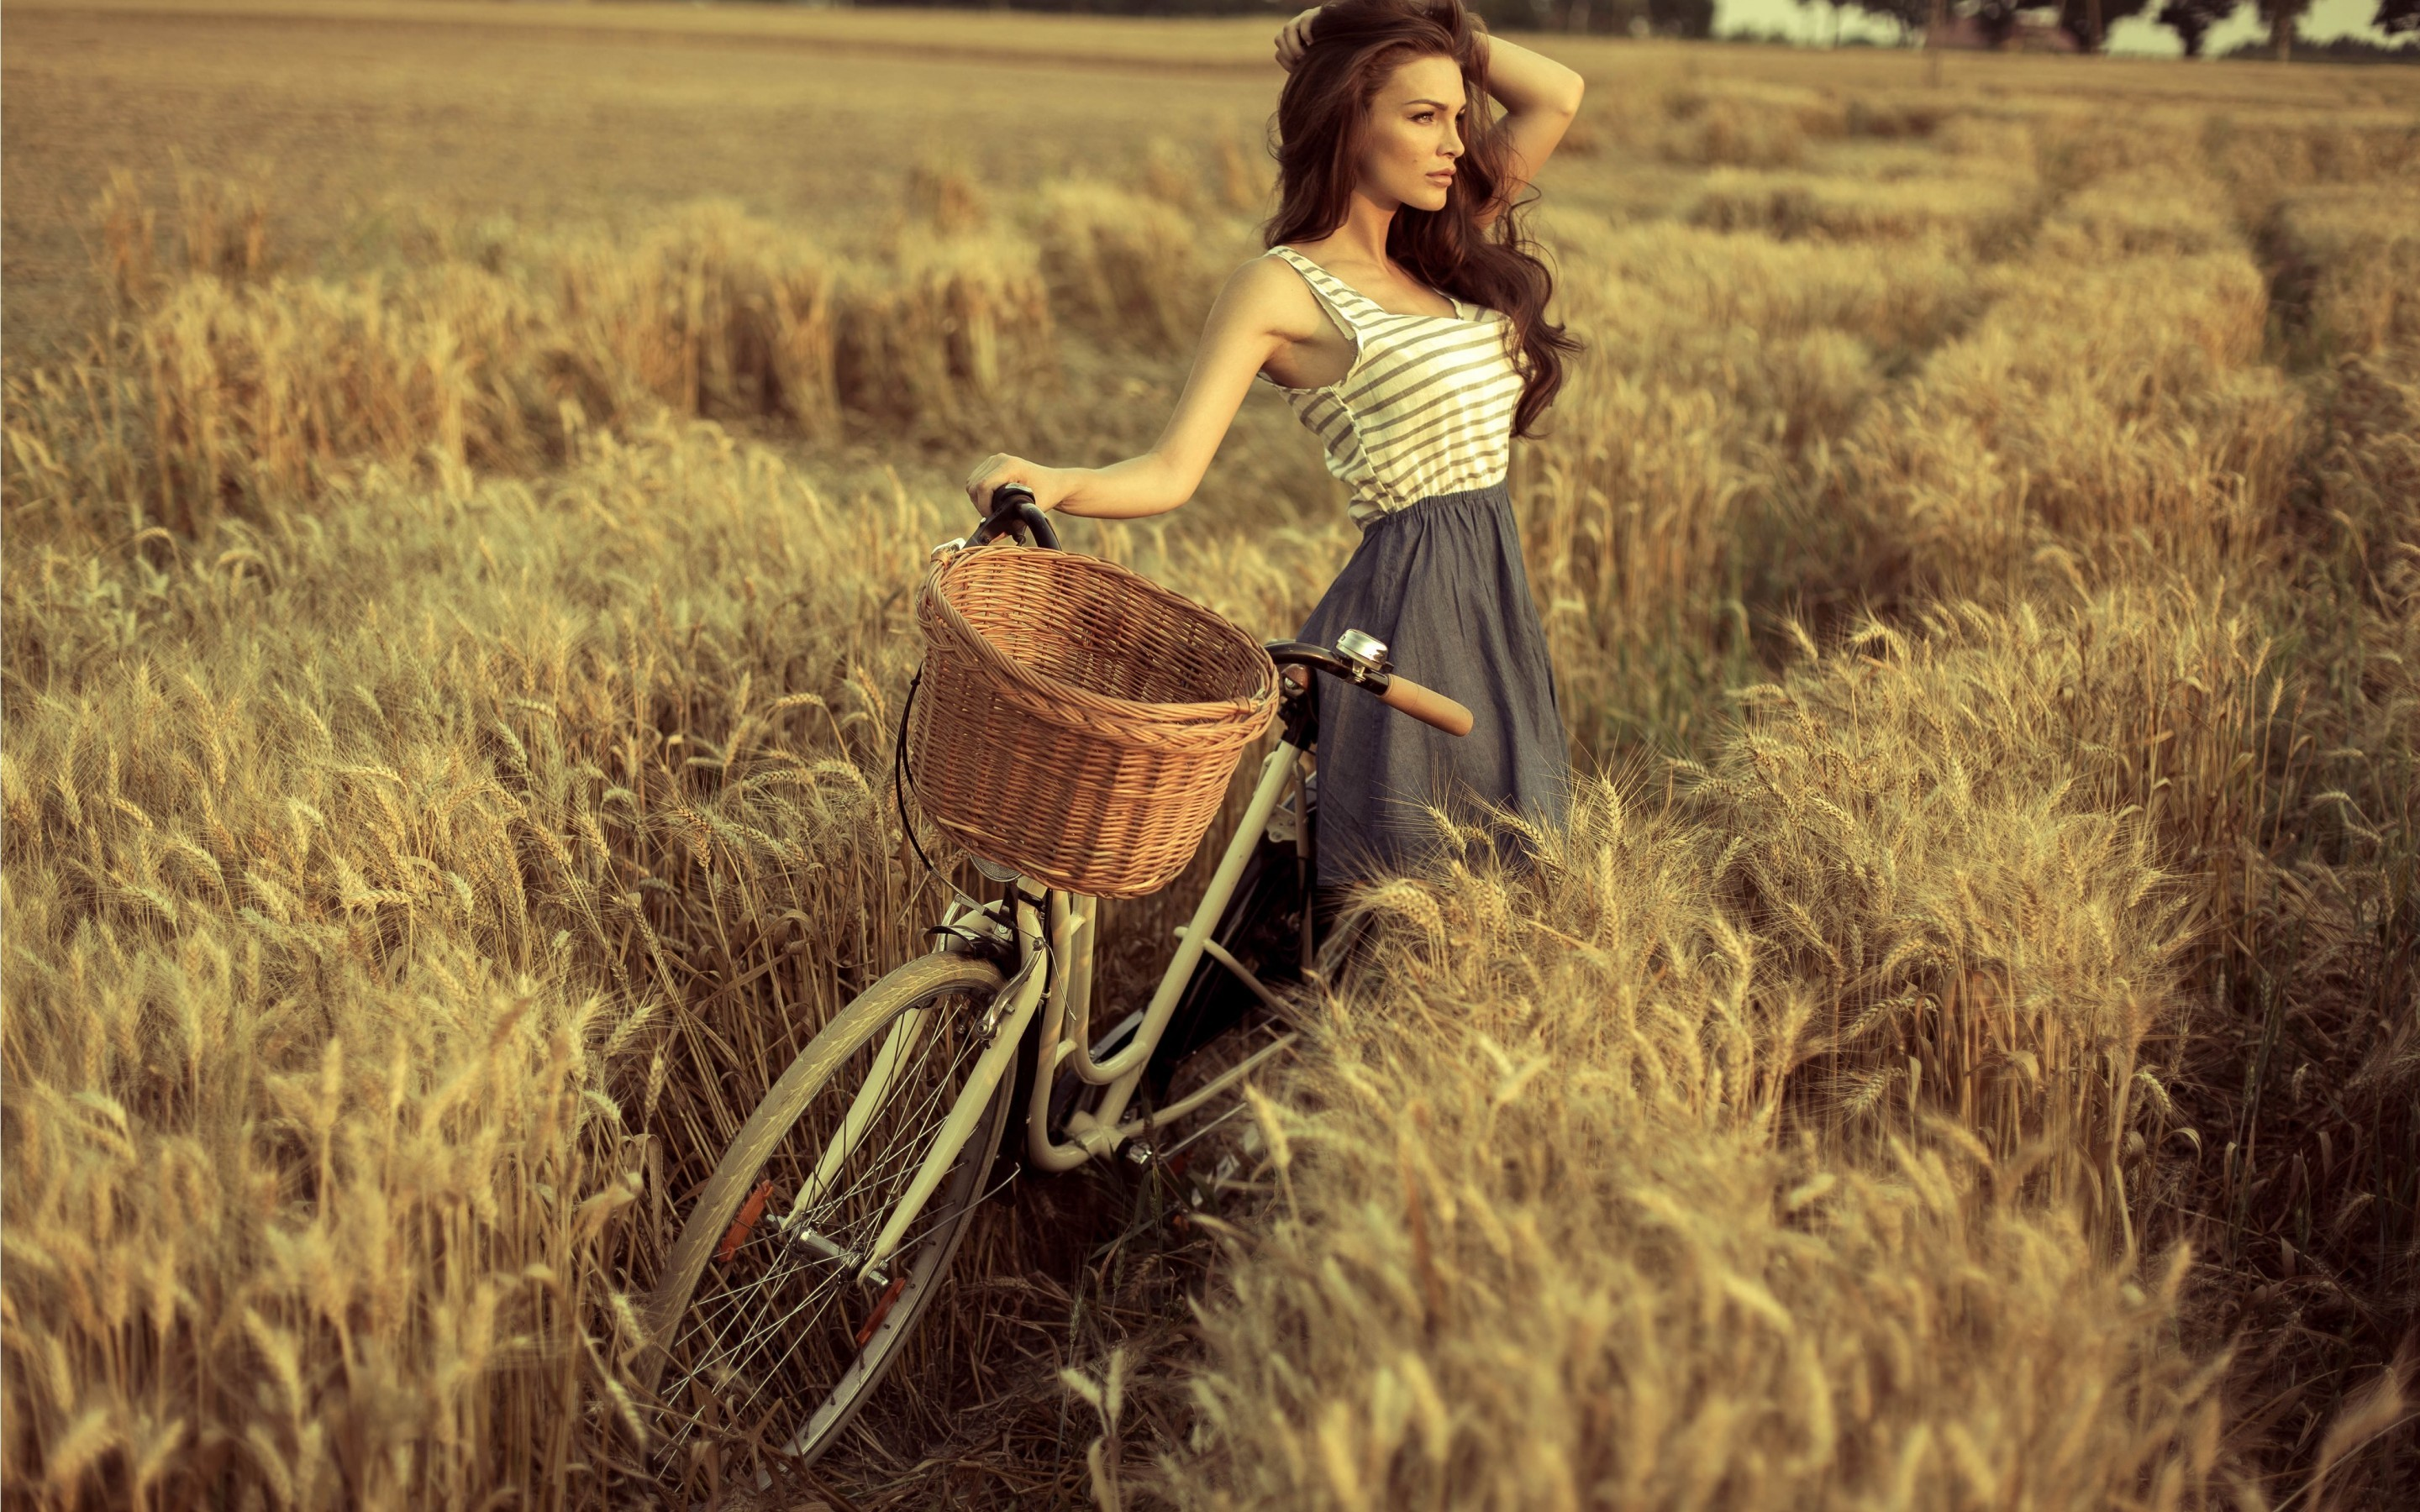 cute girl with cycle, hd girls, 4k wallpapers, images, backgrounds